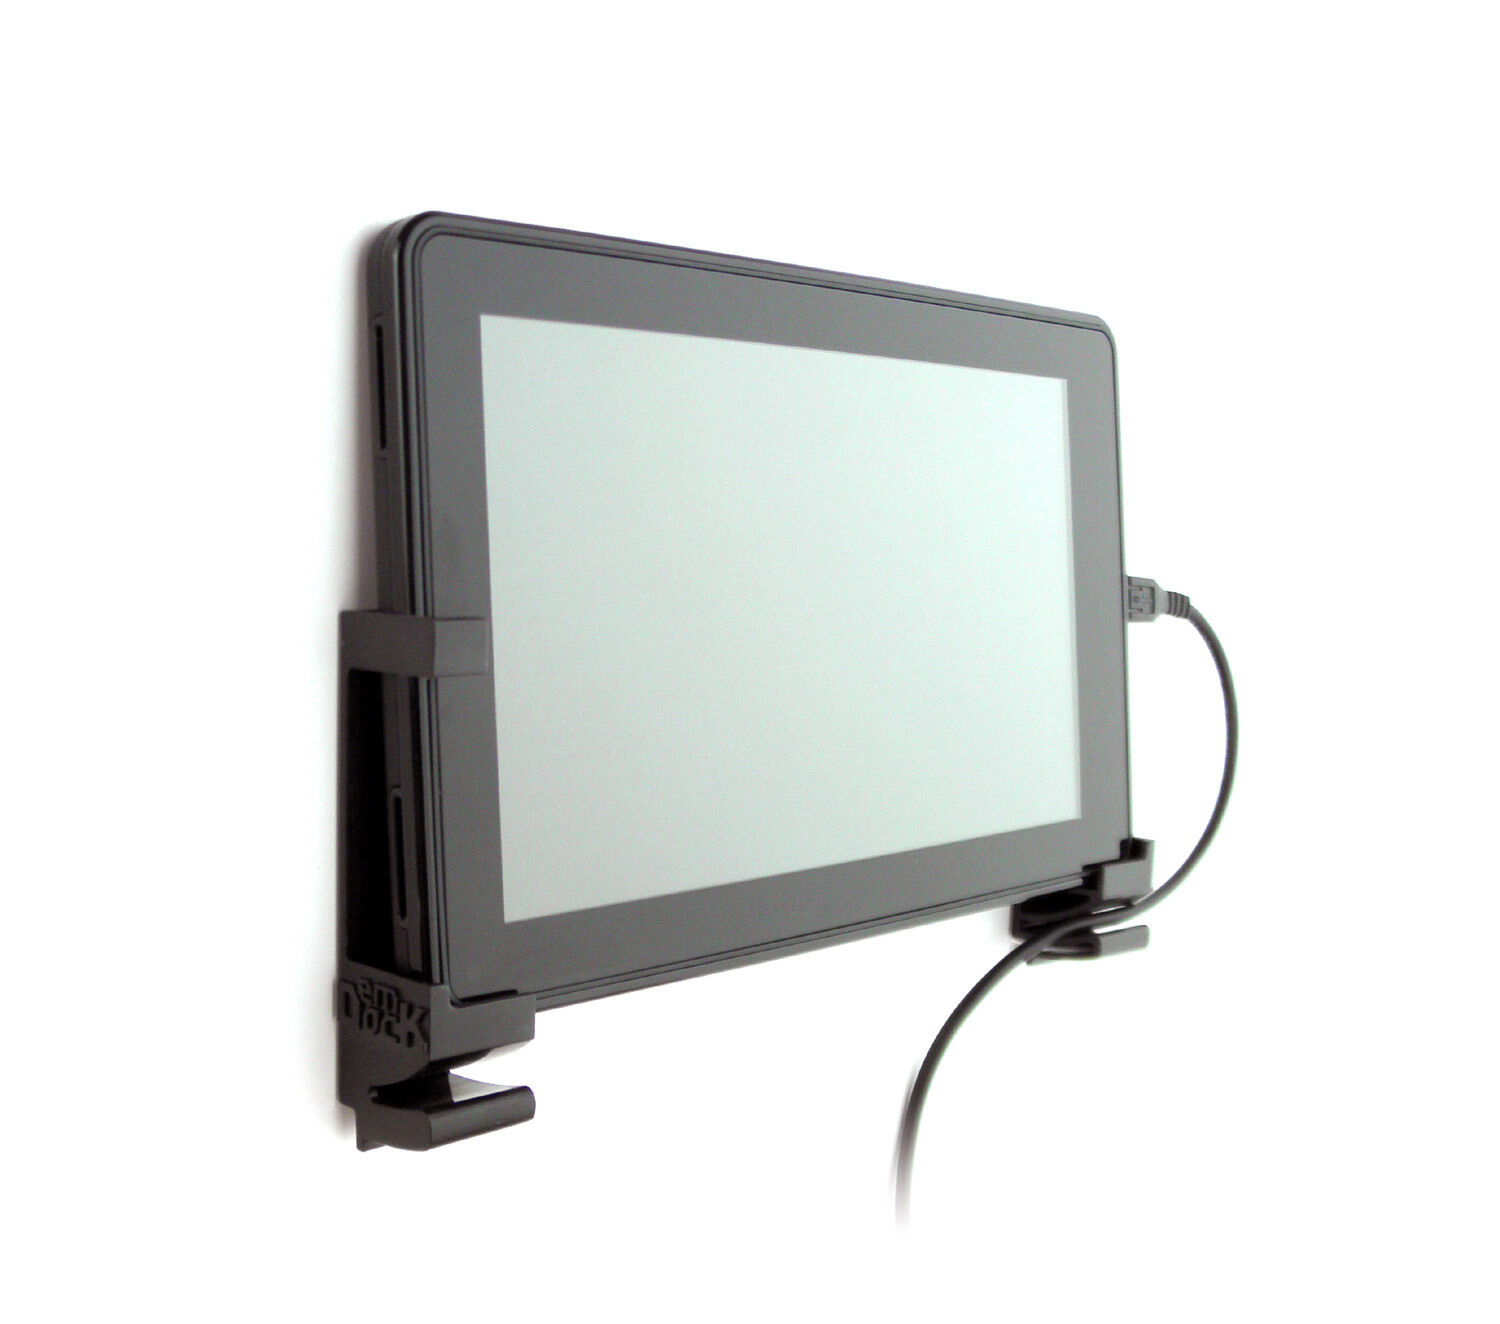 Amazon Kindle Fire Wall Mount Dock Charging Station Also